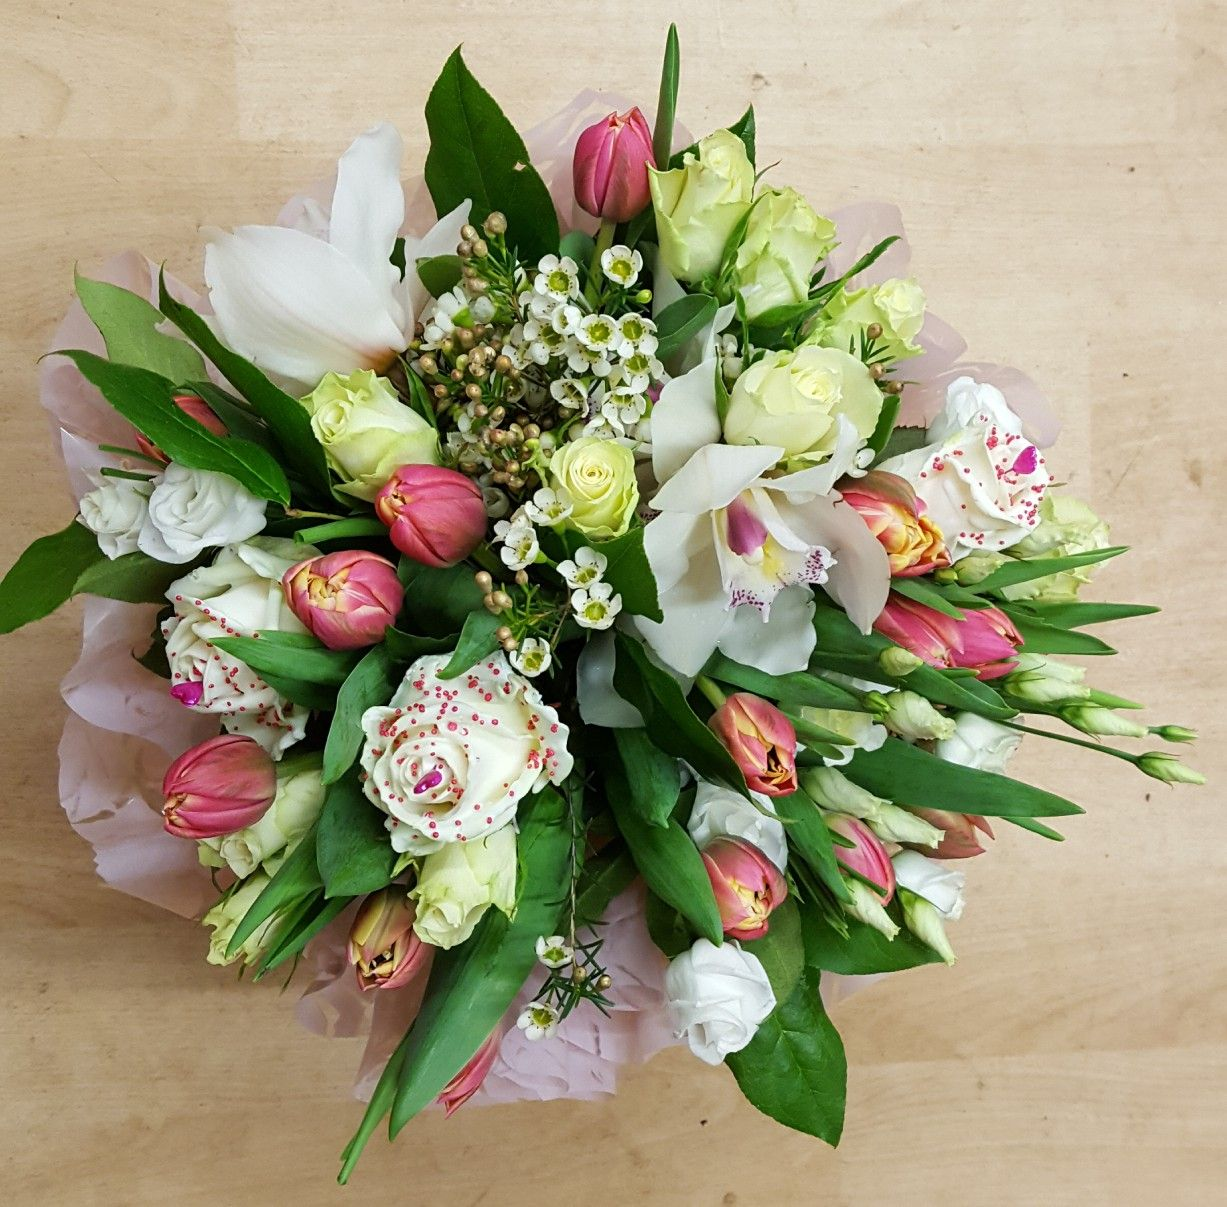 Hand tied flower bouquet created by the country florist wn8 8uh uk hand tied flower bouquet created by the country florist wn8 8uh uk pretty shades of pink bouquet of fresh tulips roses orchids and chocolate scented izmirmasajfo Gallery